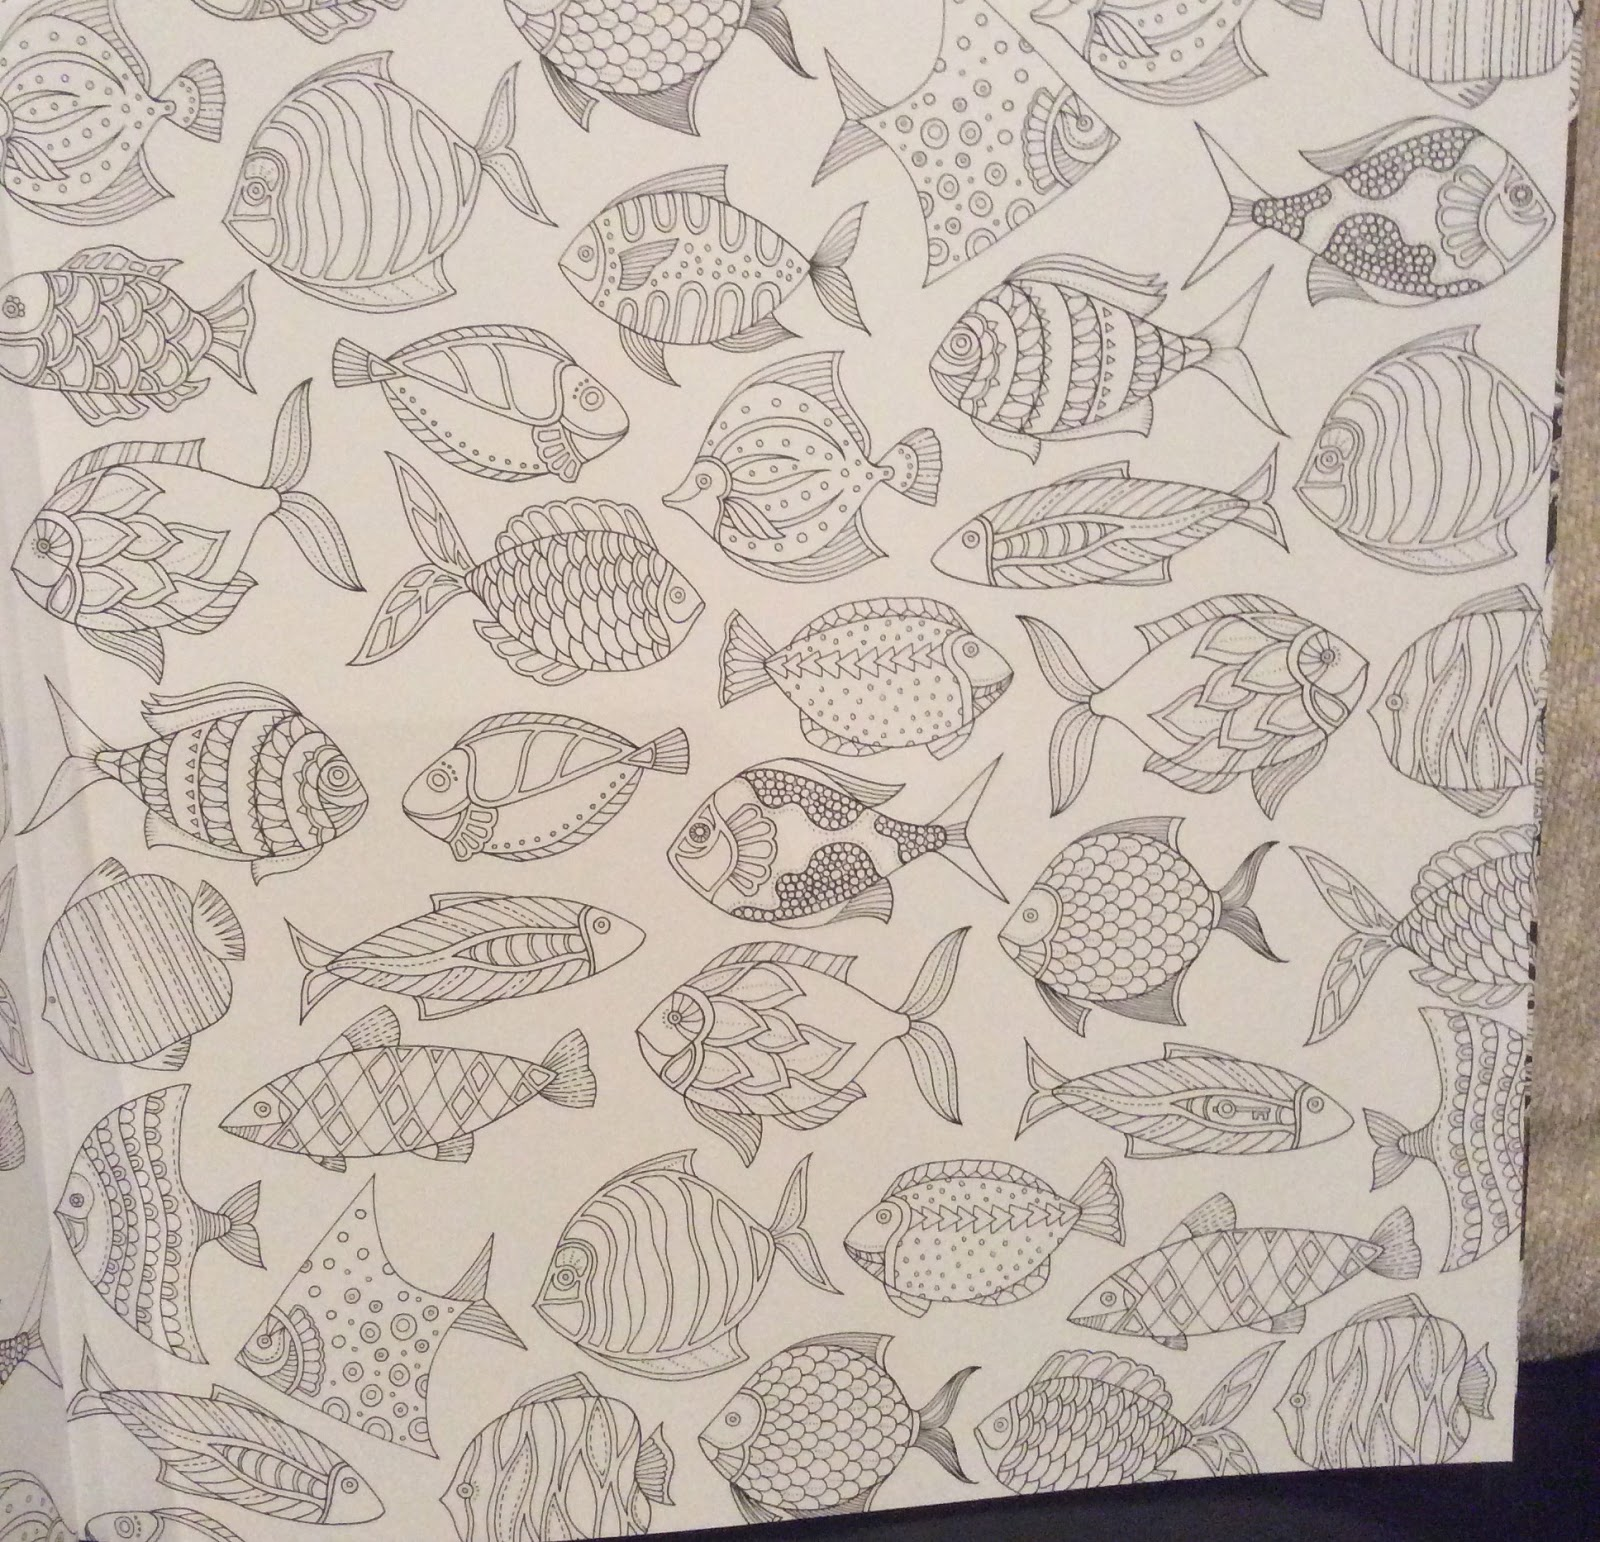 Off The Shelf Books Lost Ocean Colouring Book By Johanna